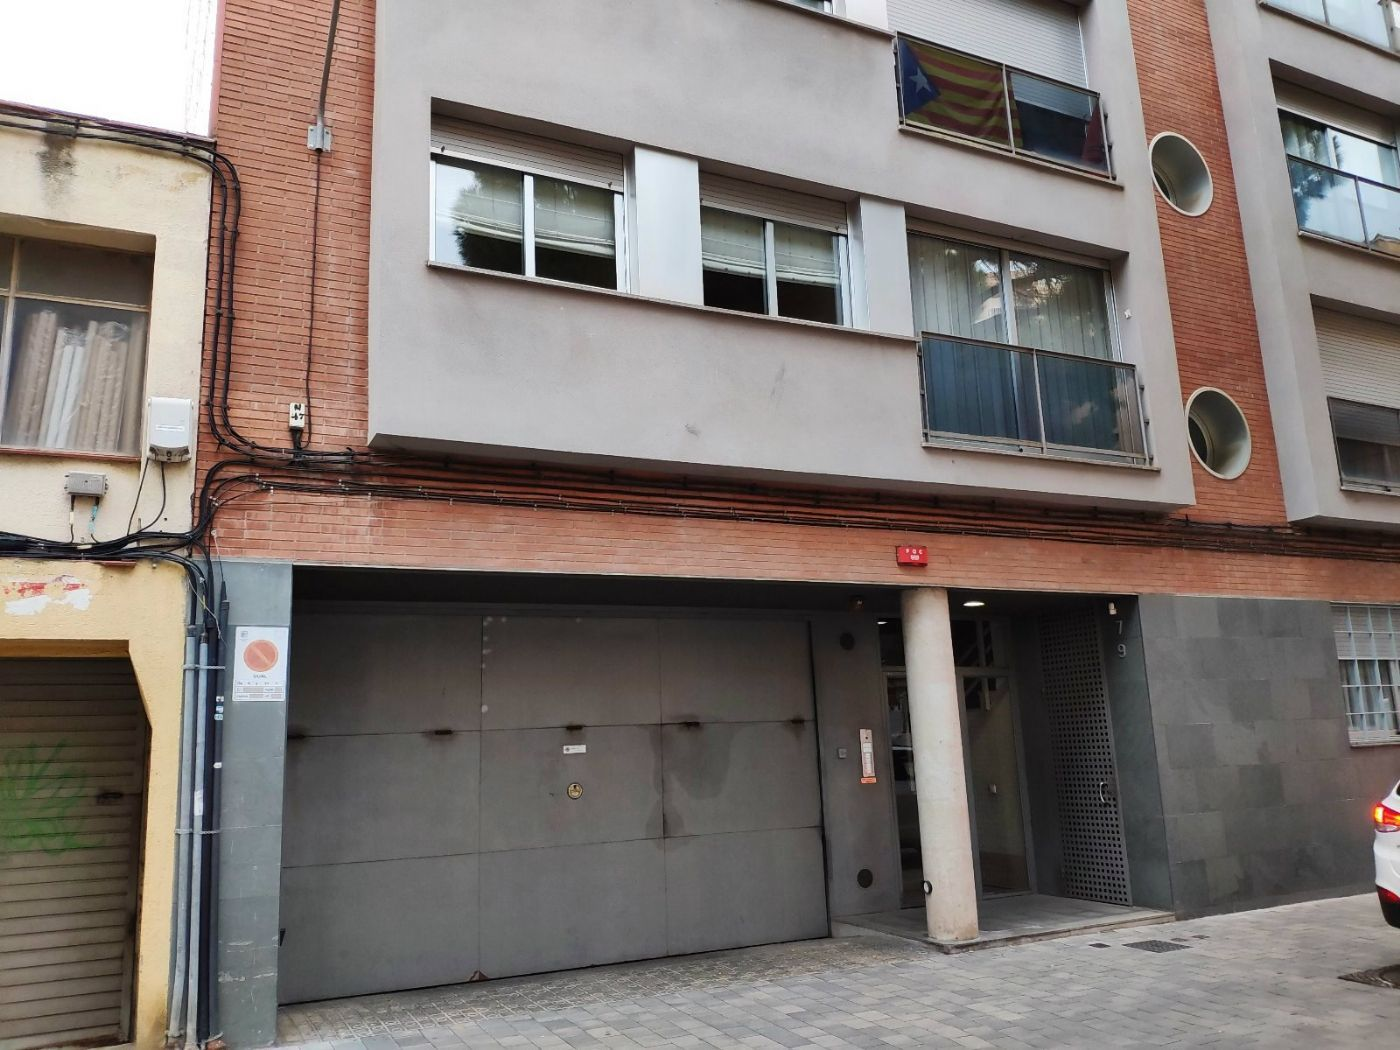 Alquiler Parking coche en Carrer maria andreu, 20. Parking largo y estrecho en -2